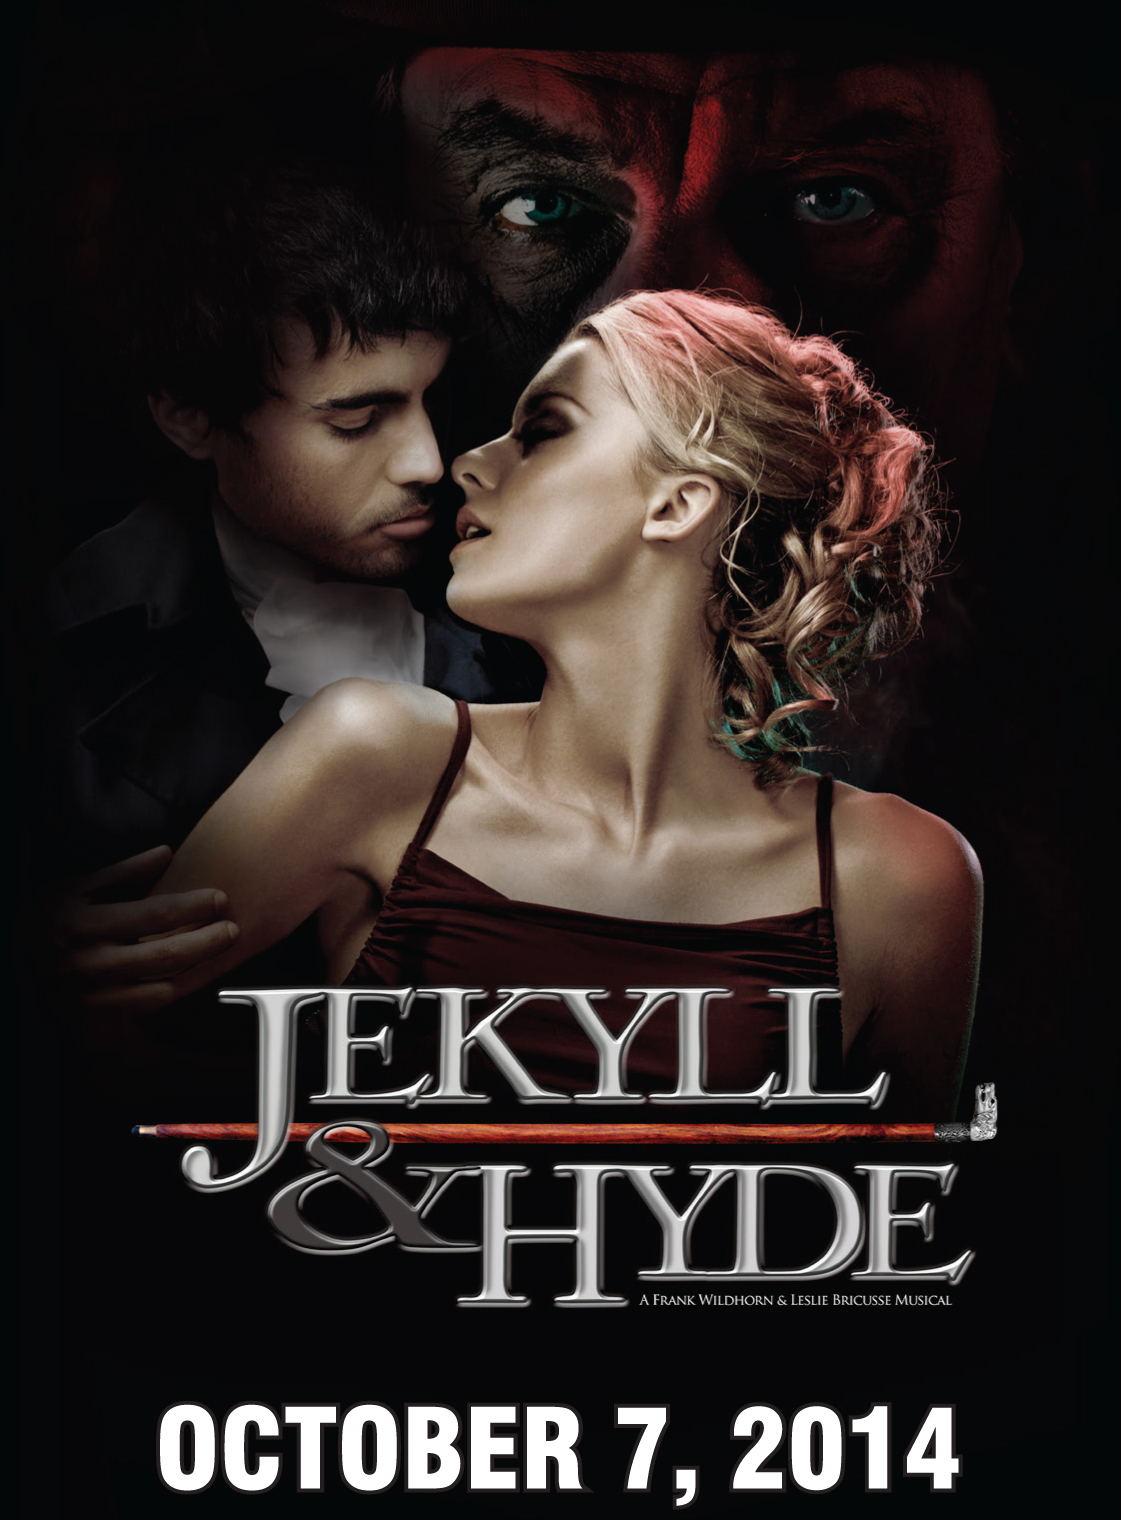 Jeckyll and Hyde